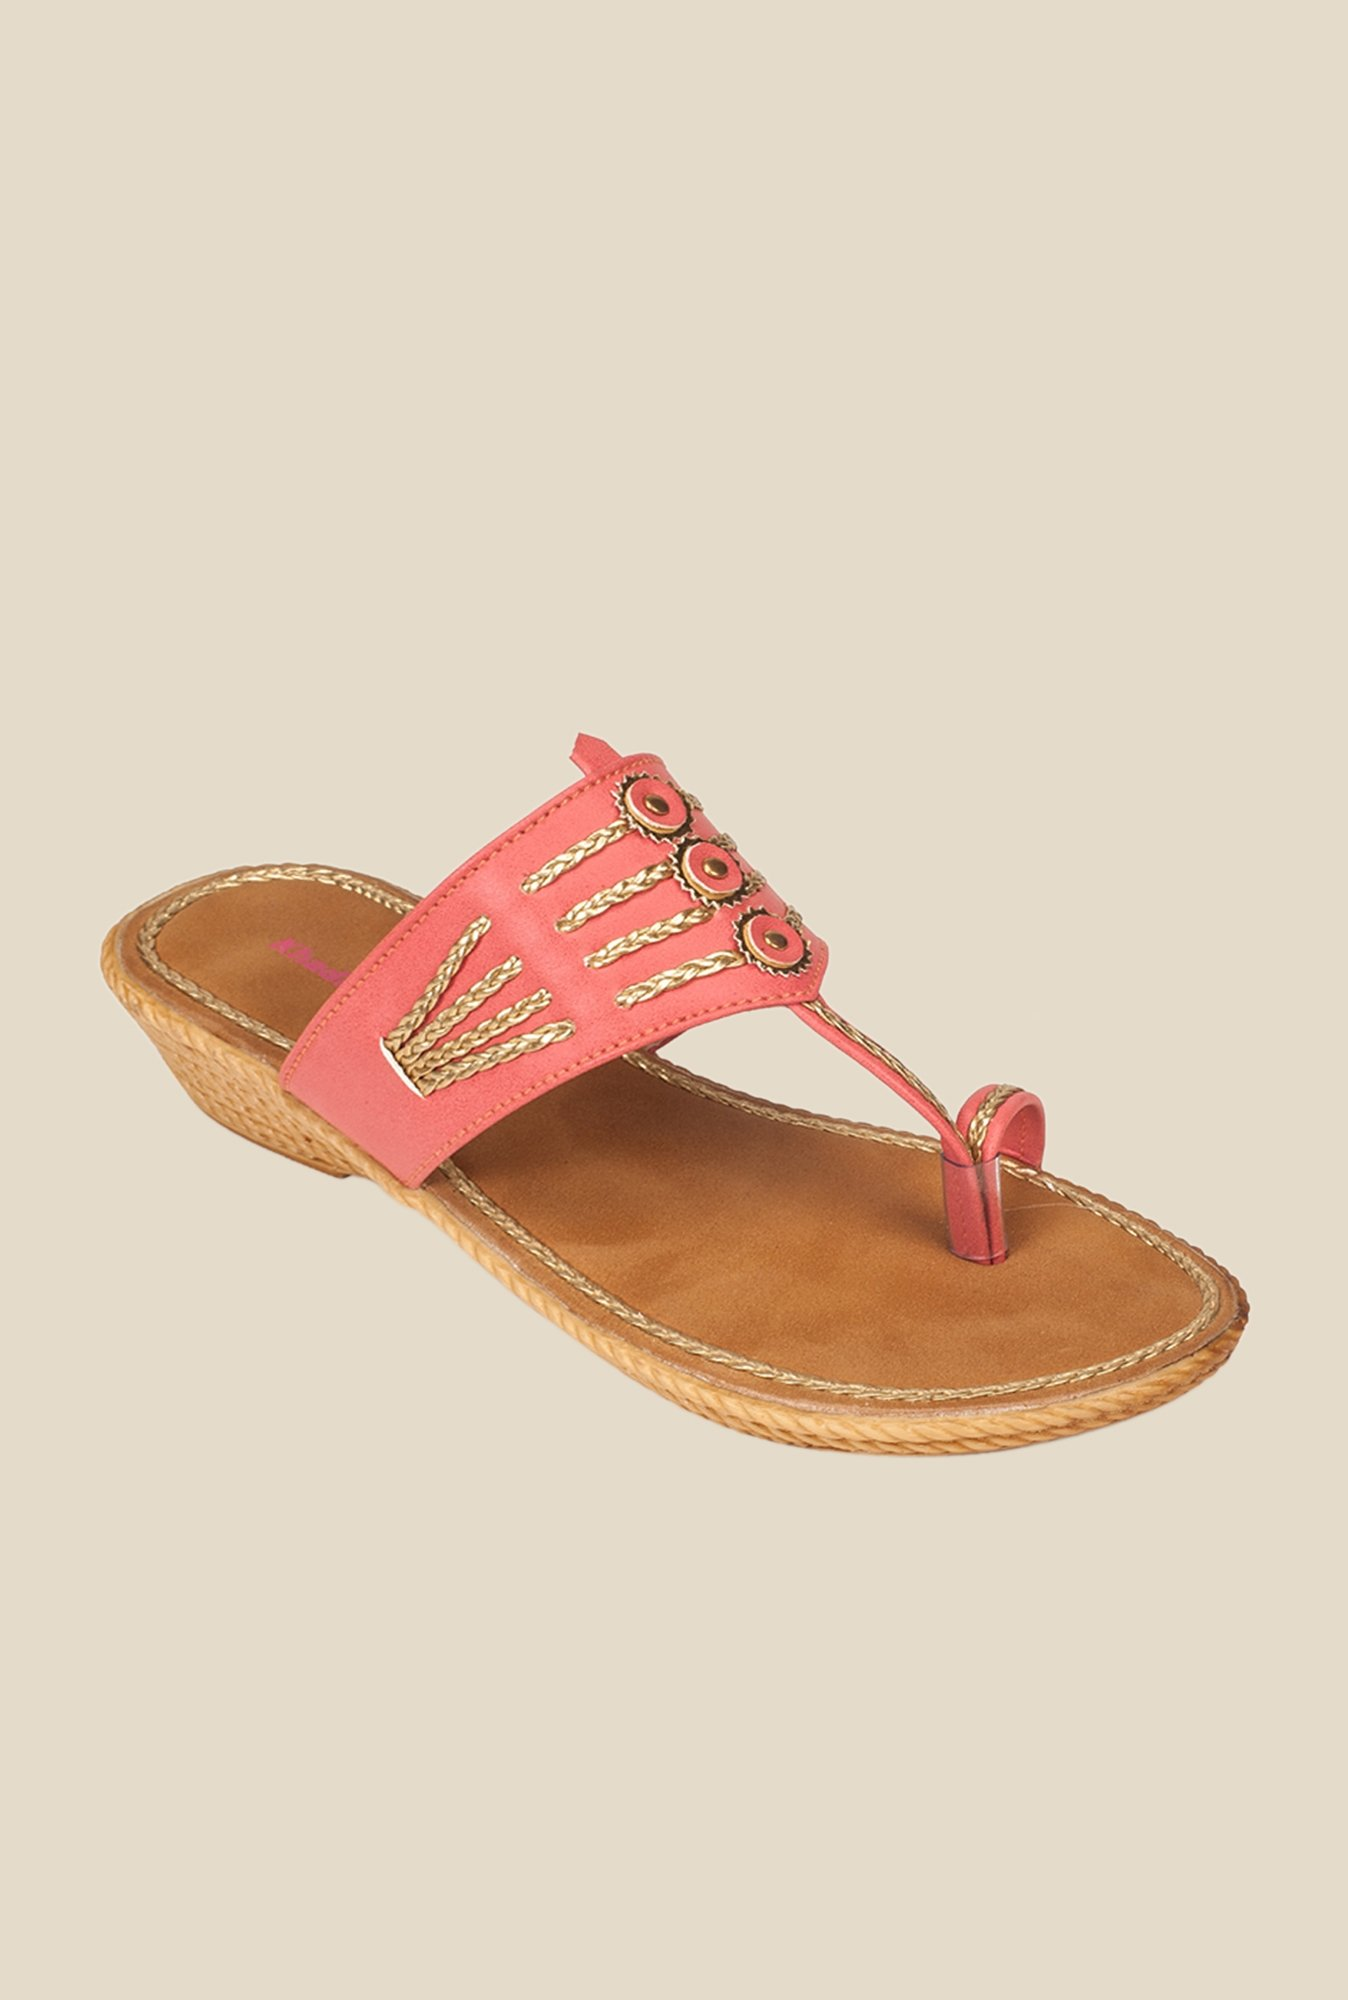 Khadim's Peach Wedge Heeled Sandals